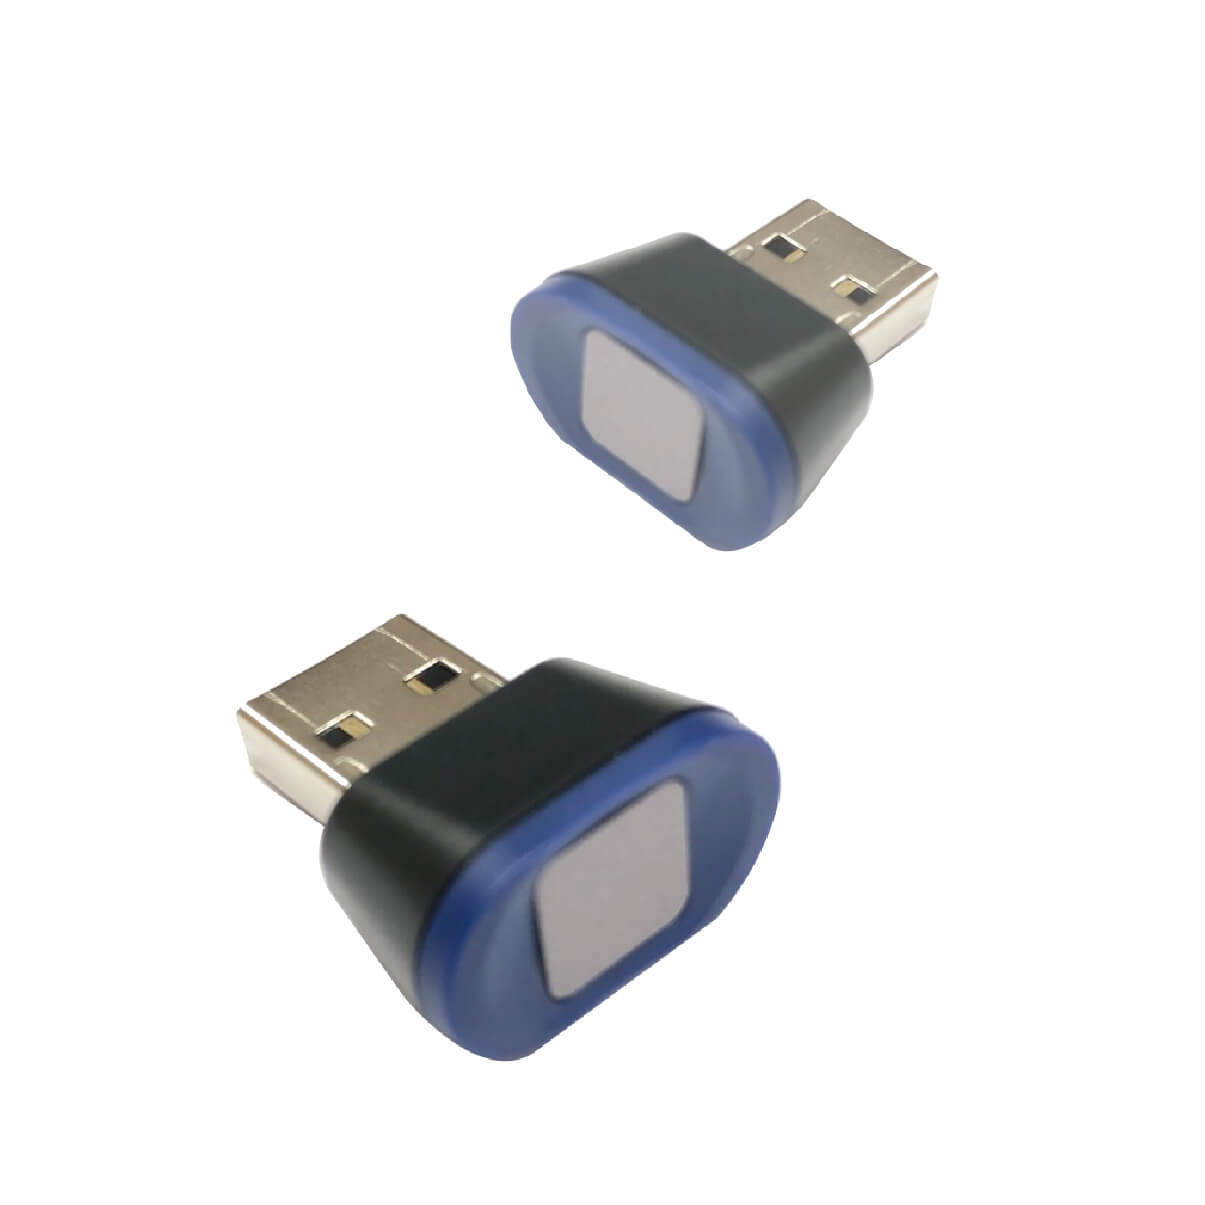 MFL-2096 Mini USB Fingerprint Lock For laptop Auto Login